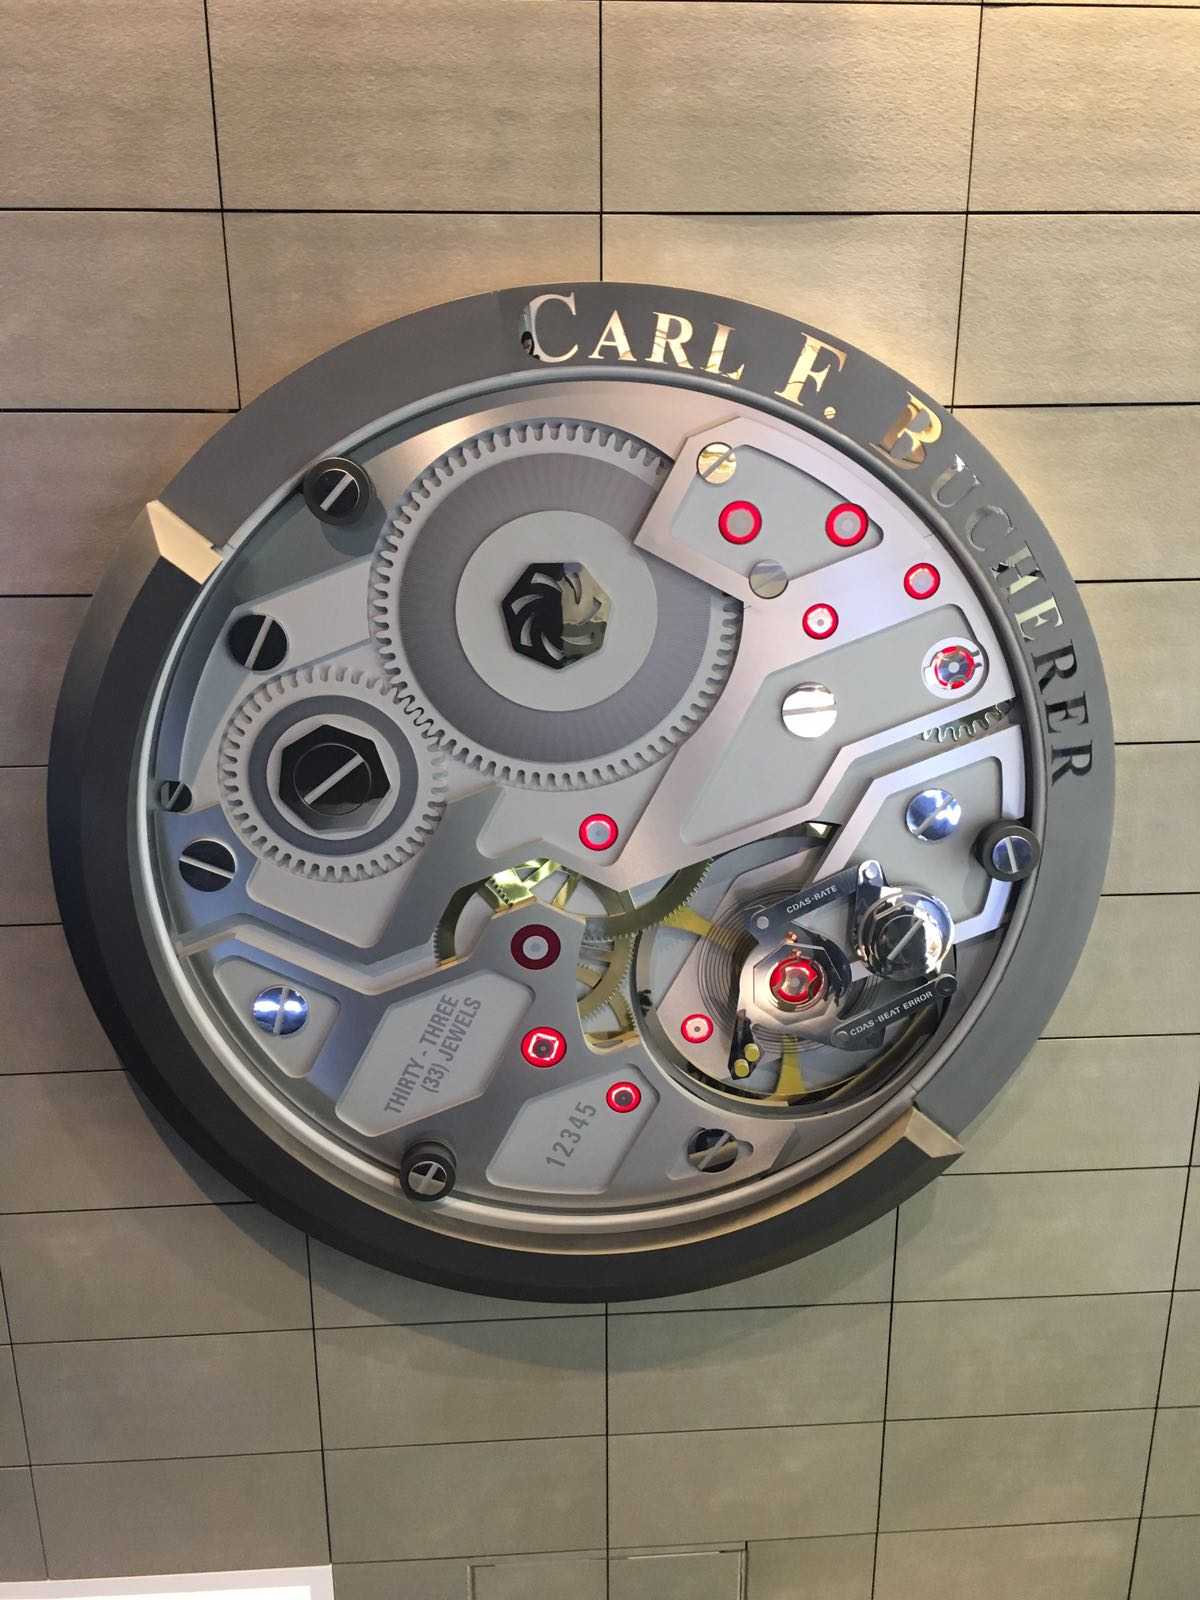 baselworld 2017 Best of Baselworld 2017 in Pictures Best of Baselworld 2017 in Pictures 22